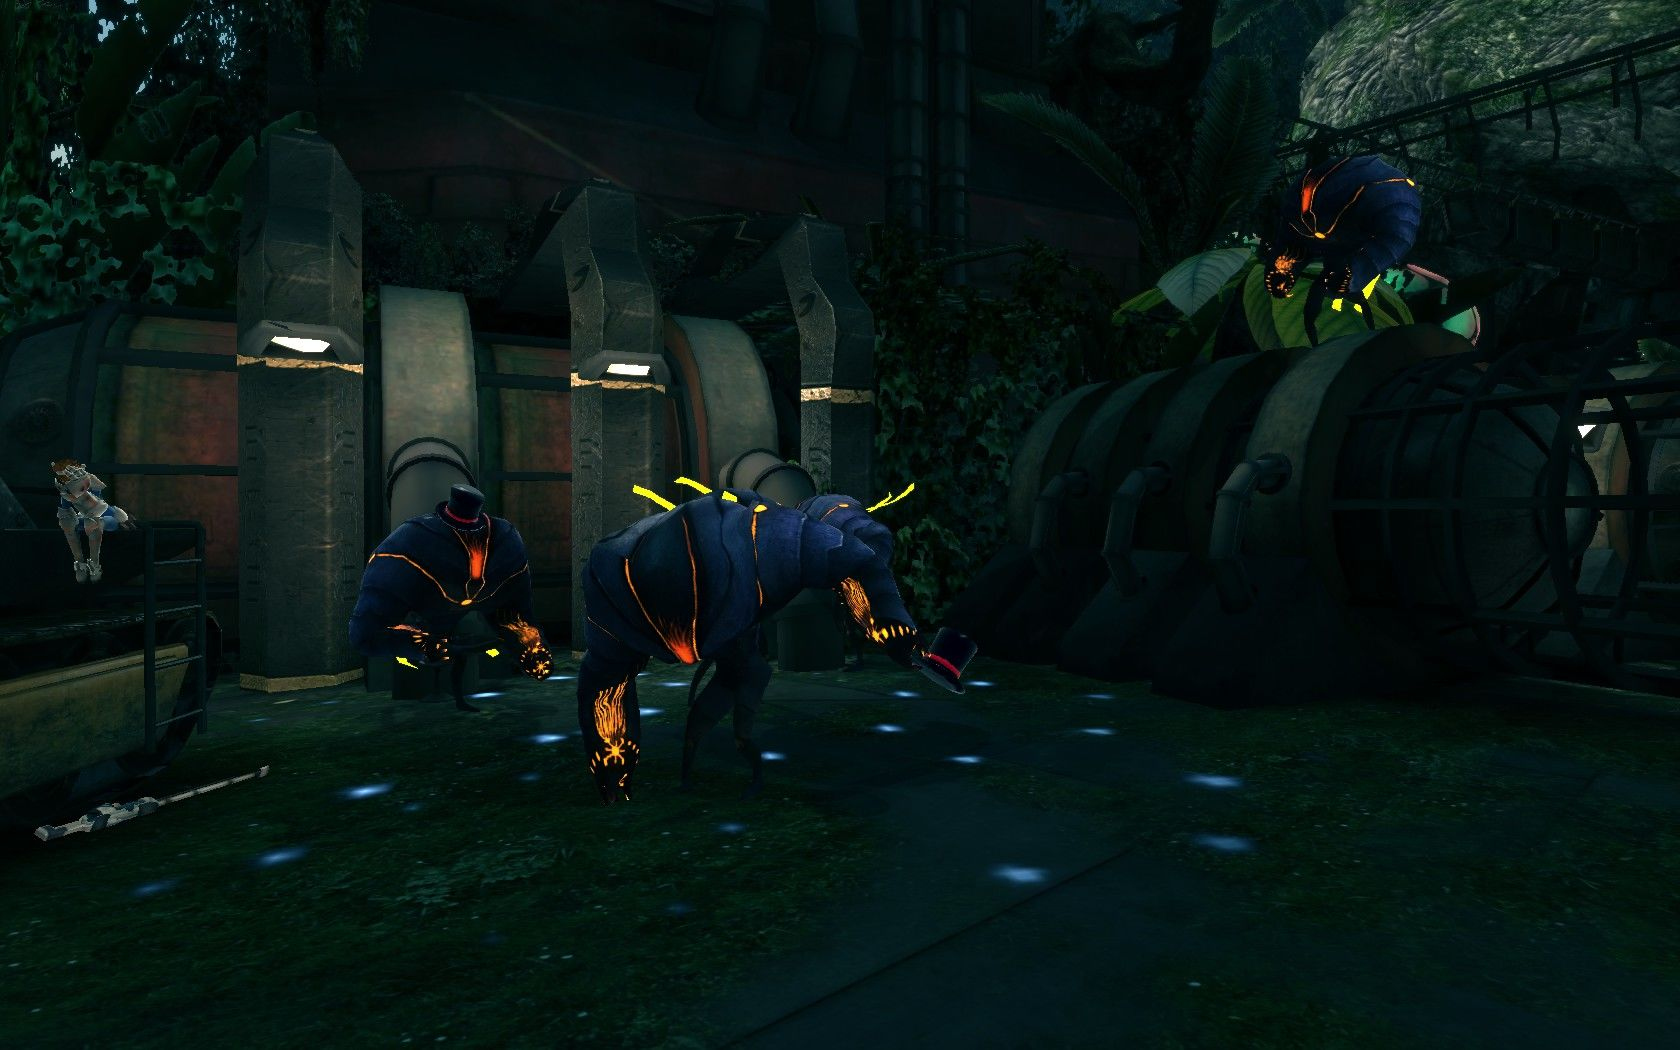 Sanctum Windows Game over - and the enemies do a little dance with their party hats on